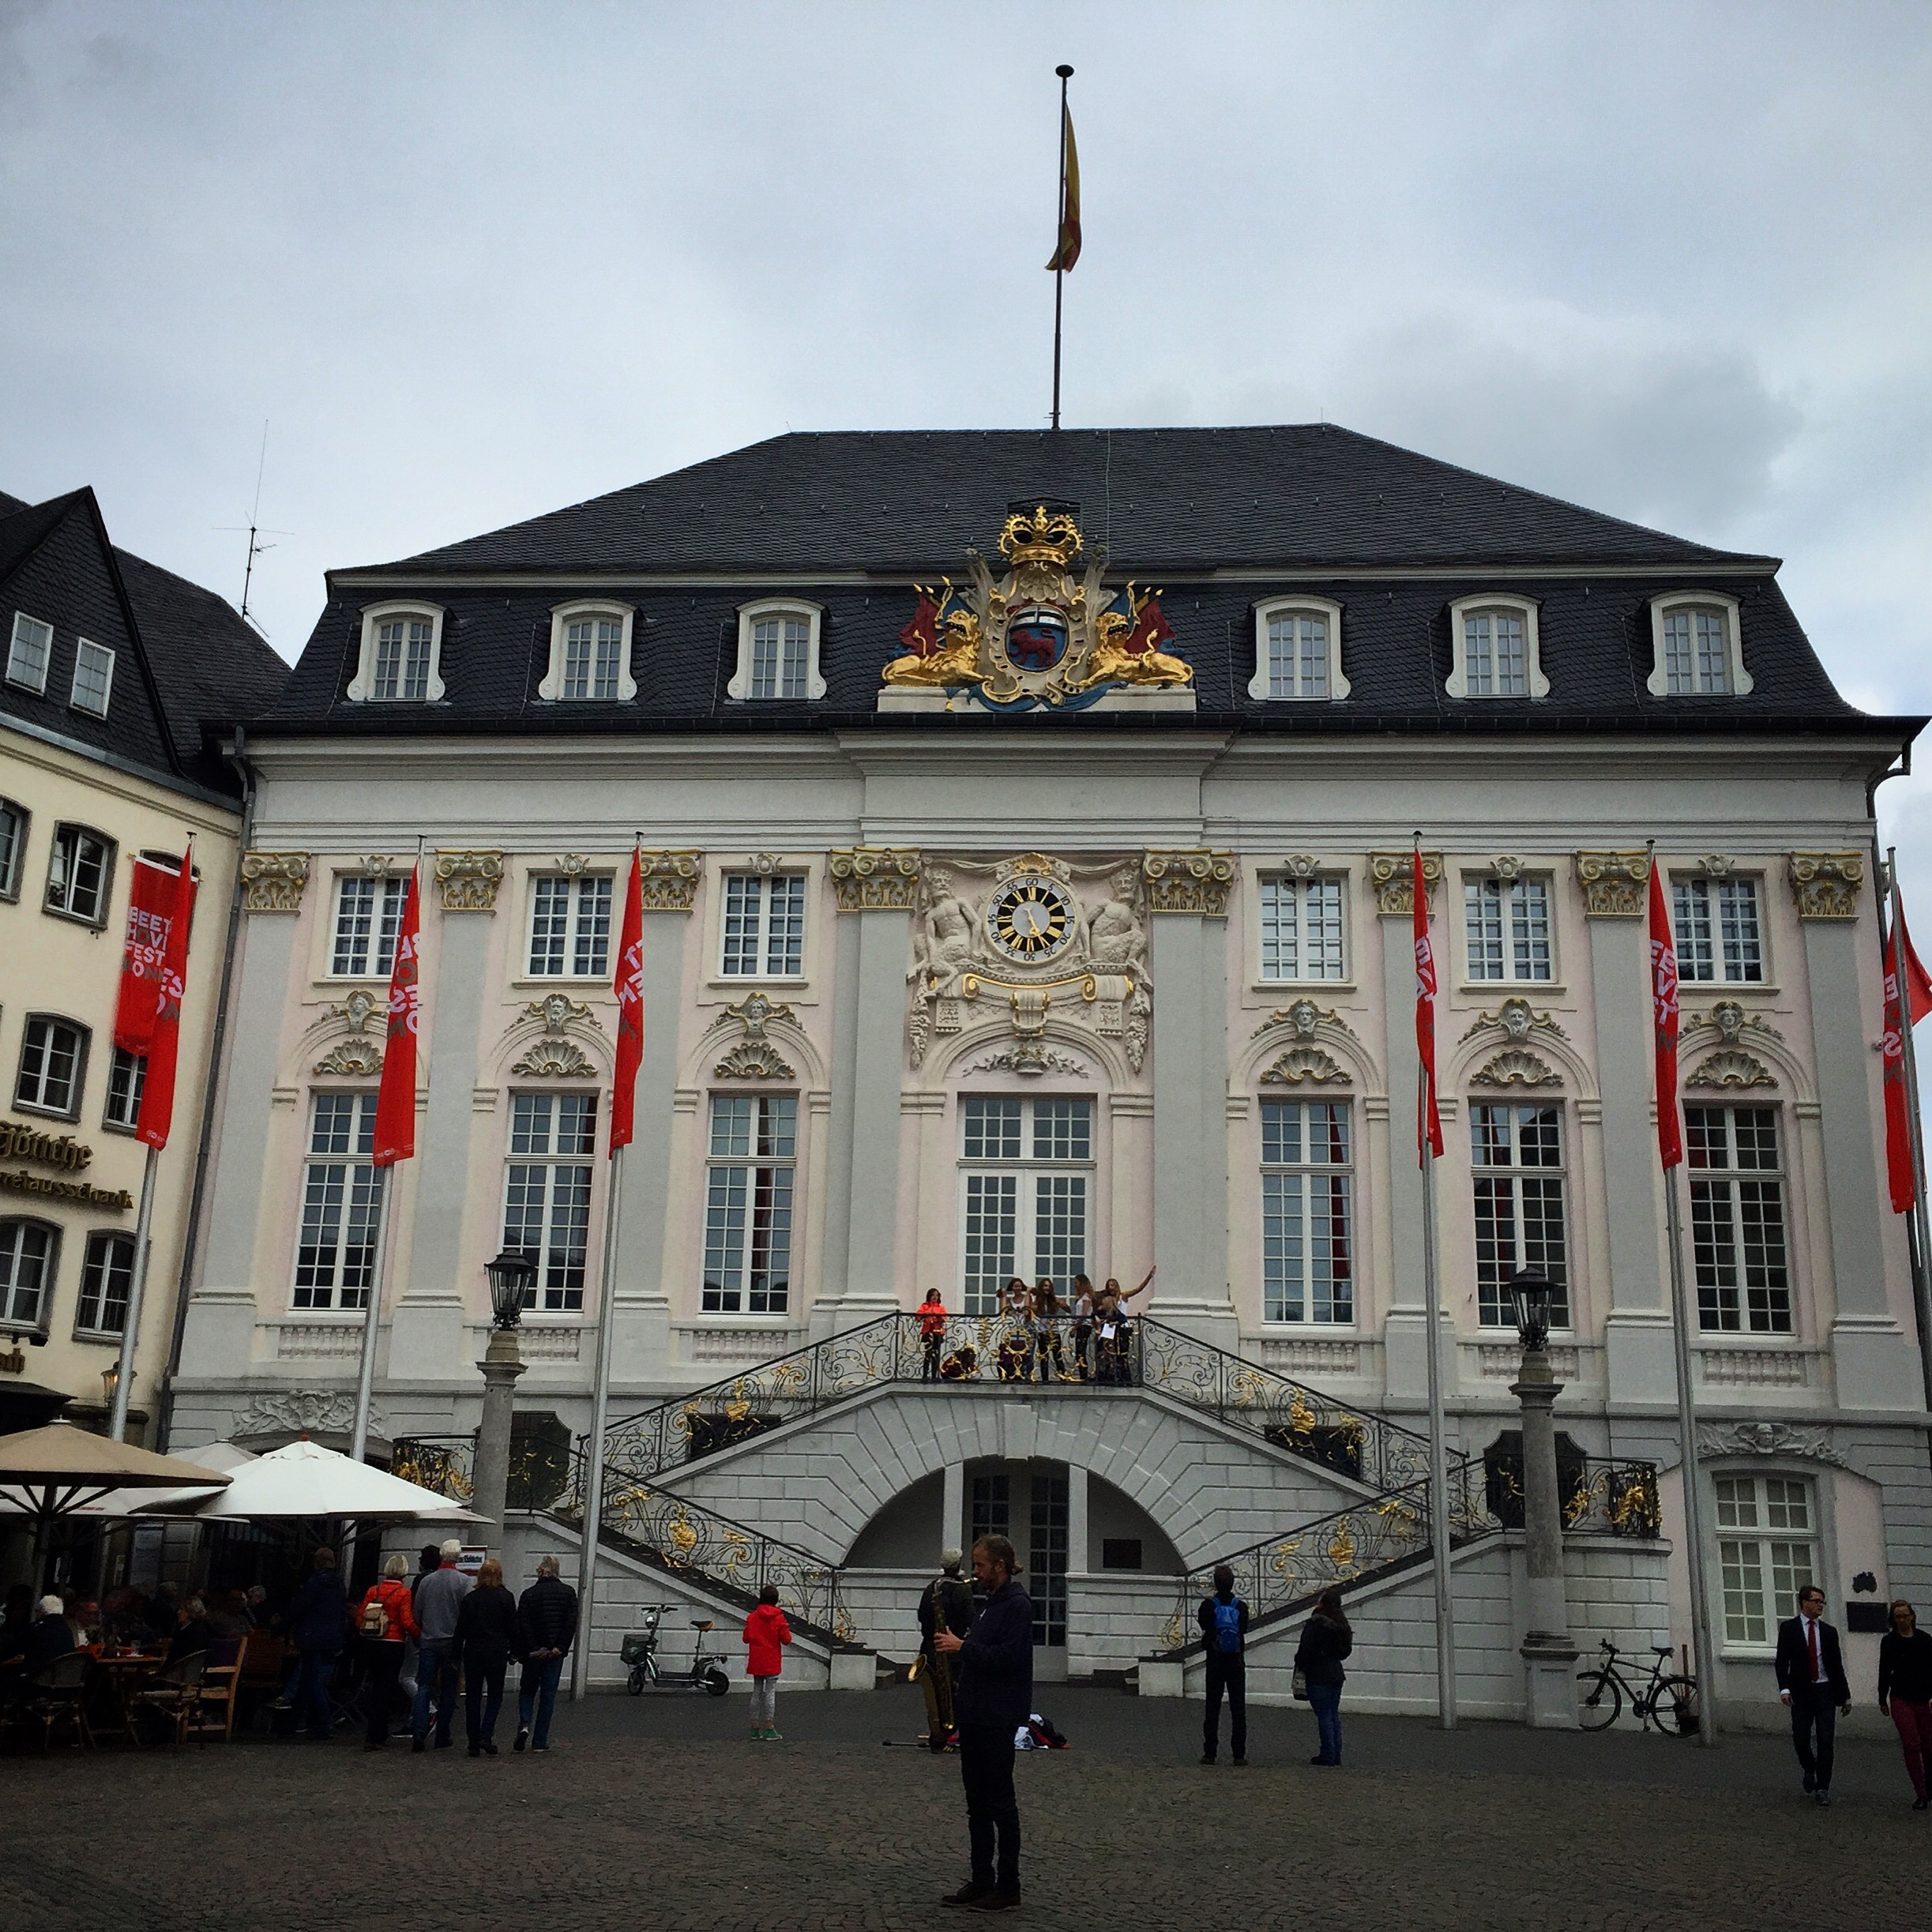 Old Town Hall - Rathaus